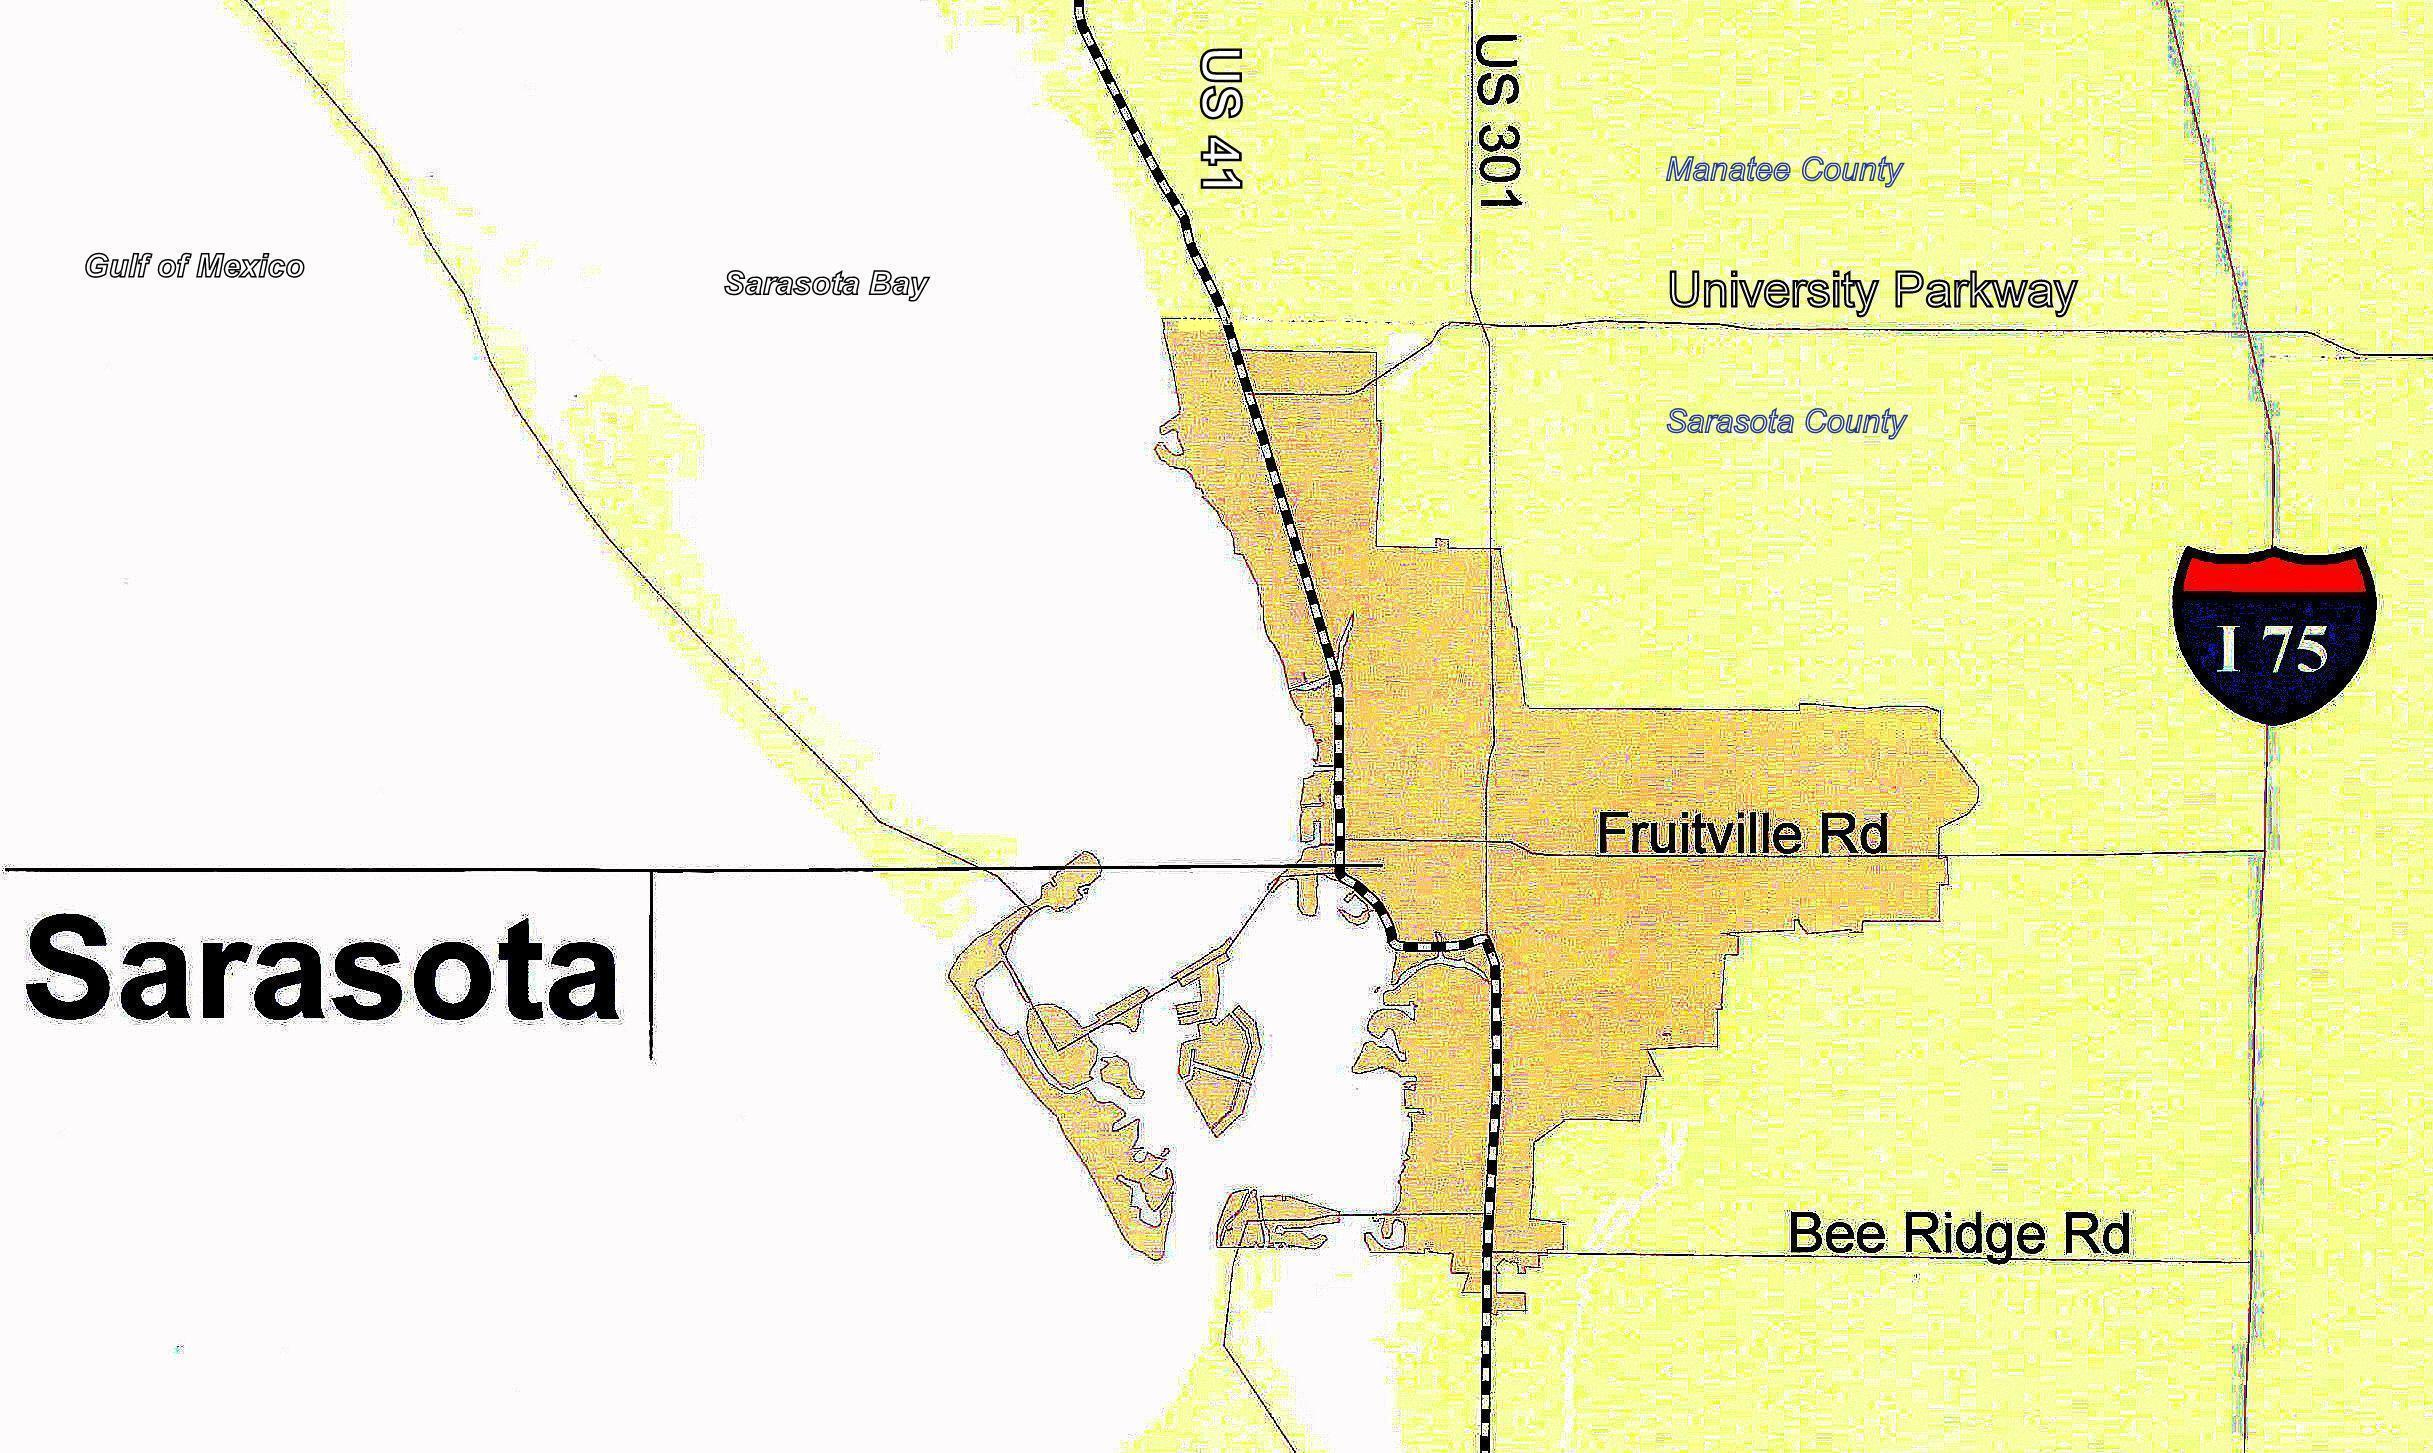 File:sarasota - City Colored Gold 2.0 - 83D40M - Map Of Tamiami - Tamiami Trail Florida Map